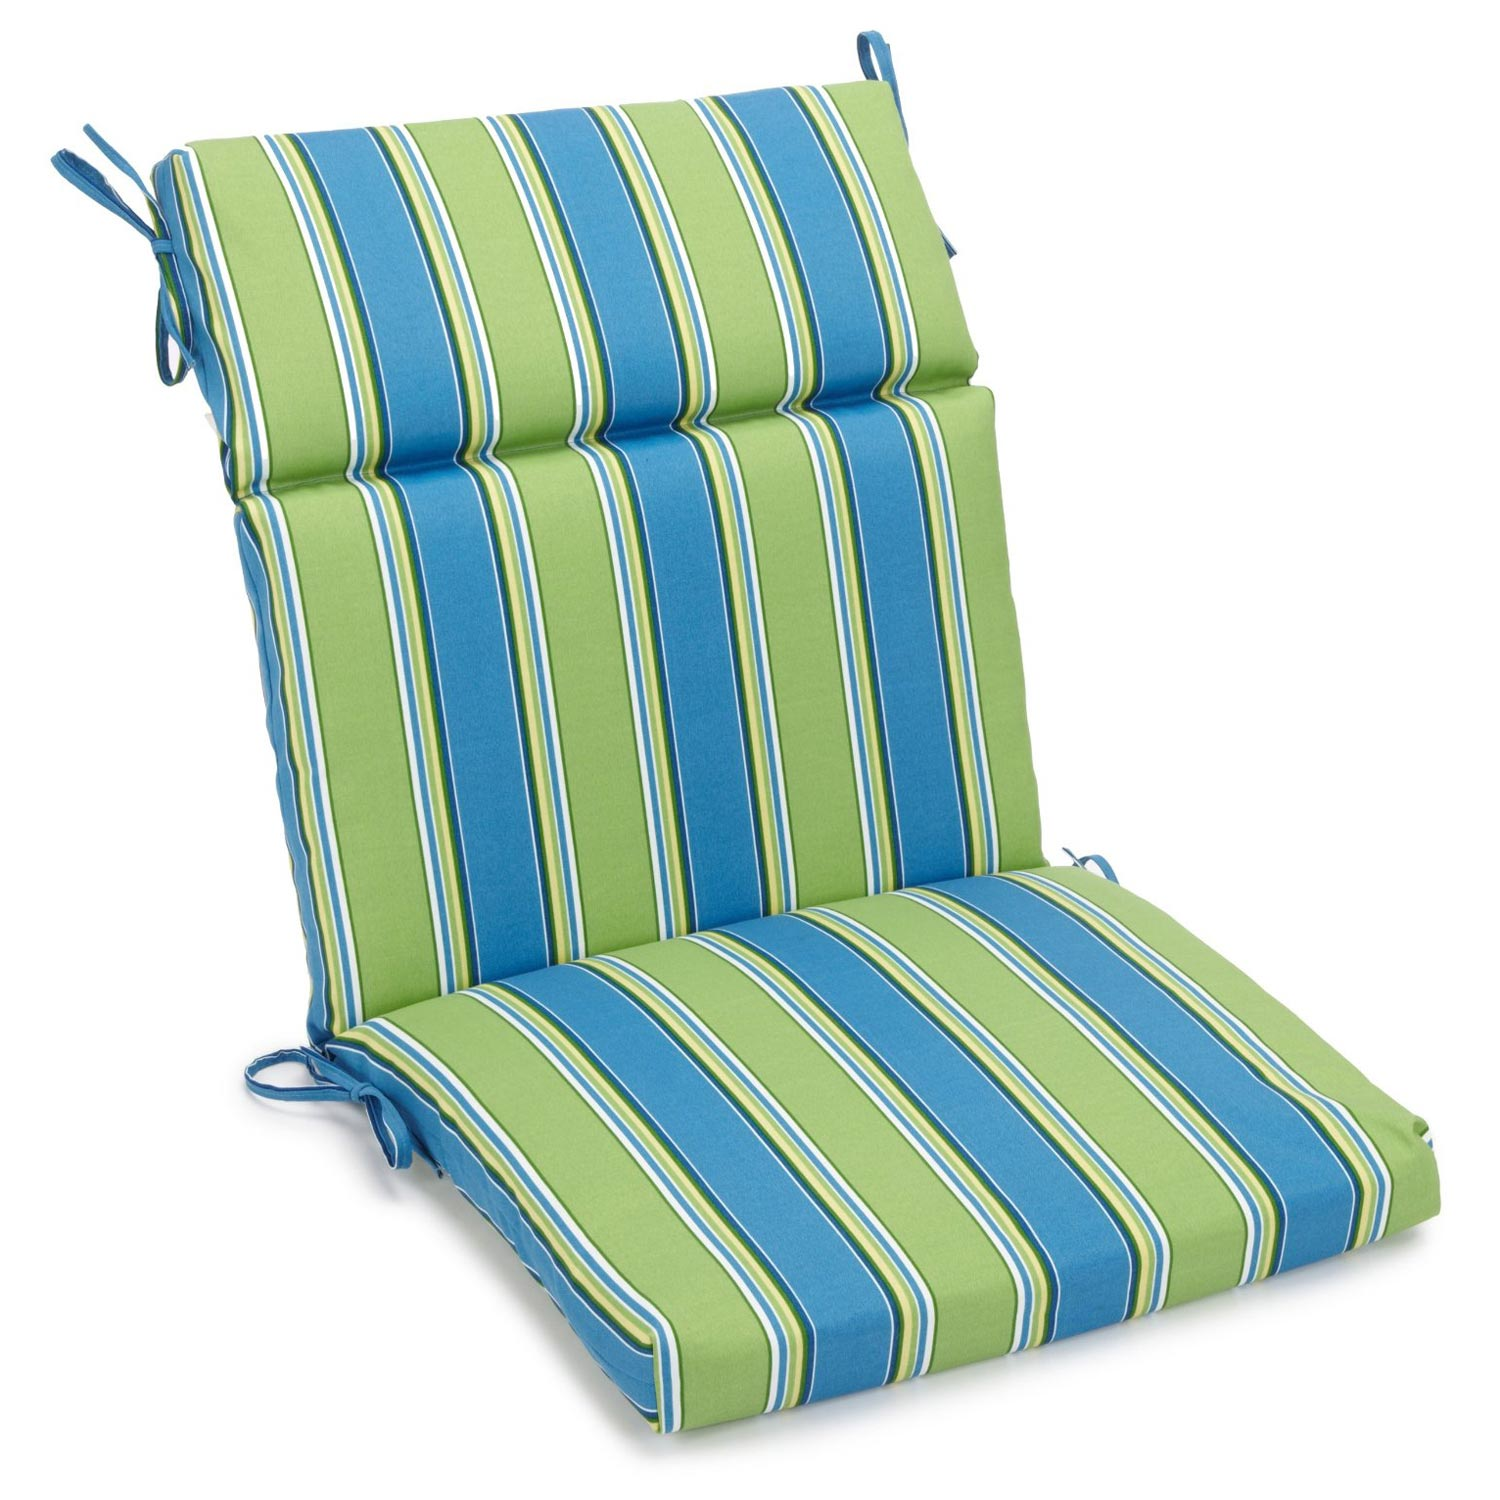 3 section 22quot x 45quot patio chair cushion ties patterned for Outdoor furniture cushion cover material